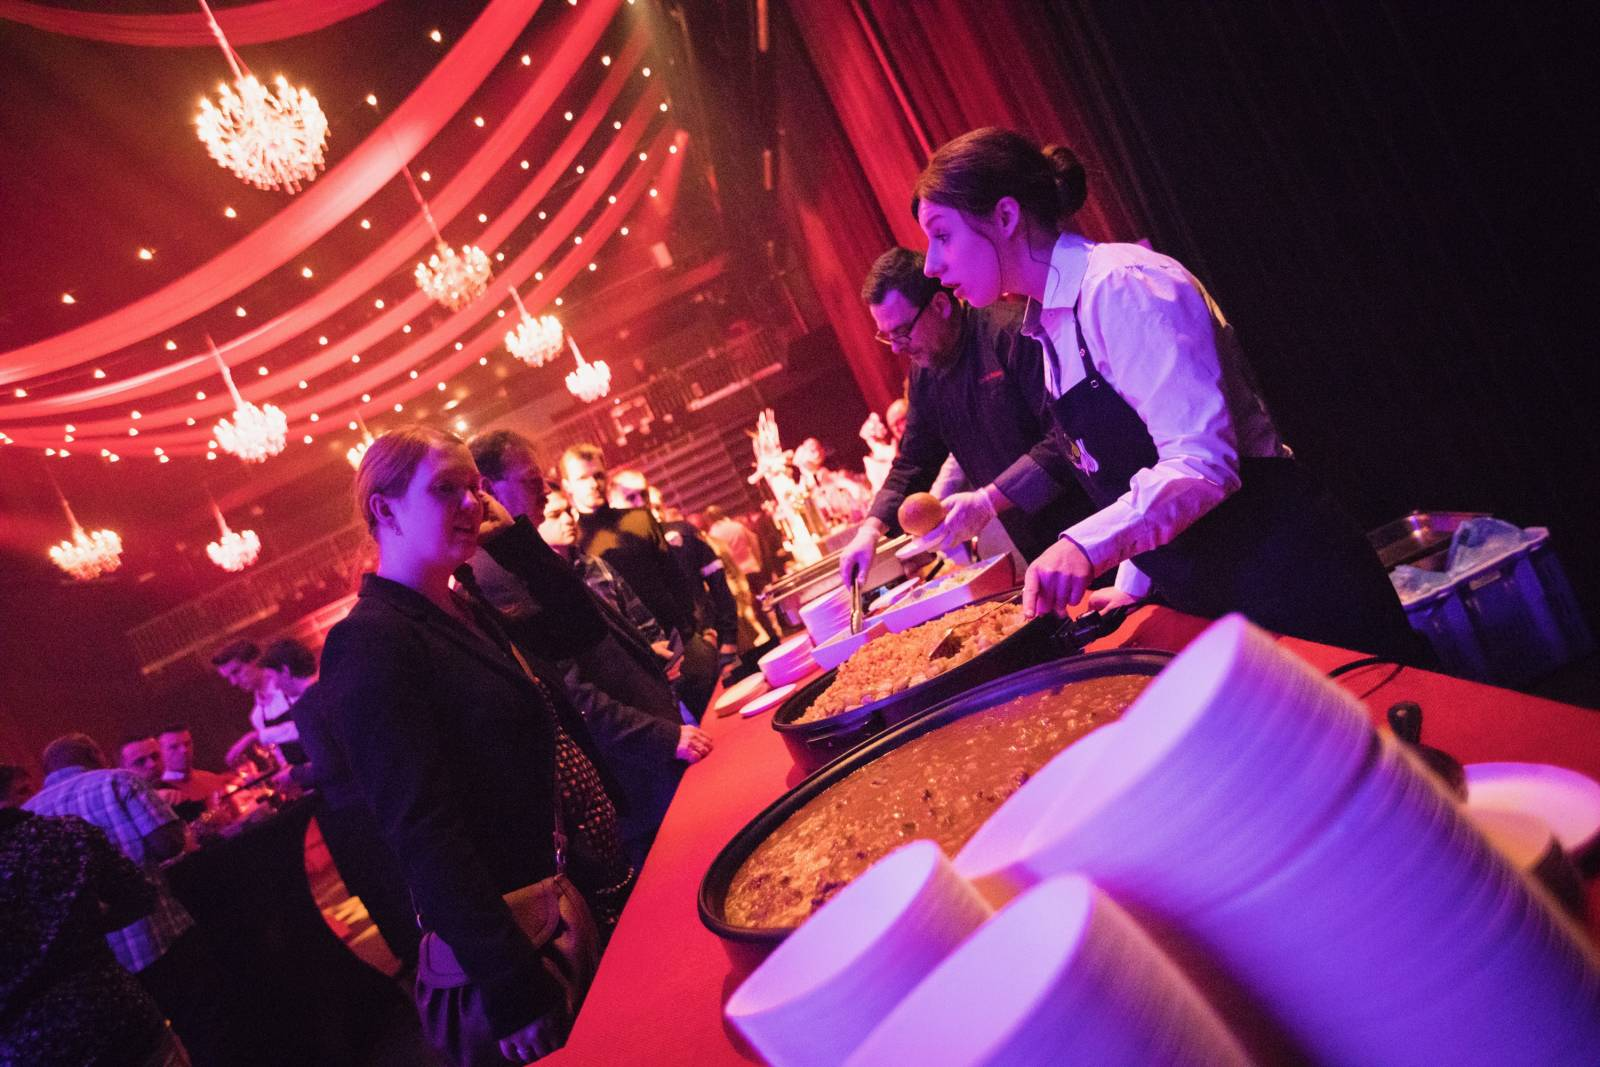 Cuisine Catering - Catering - Traiteur – House of Weddings - 13